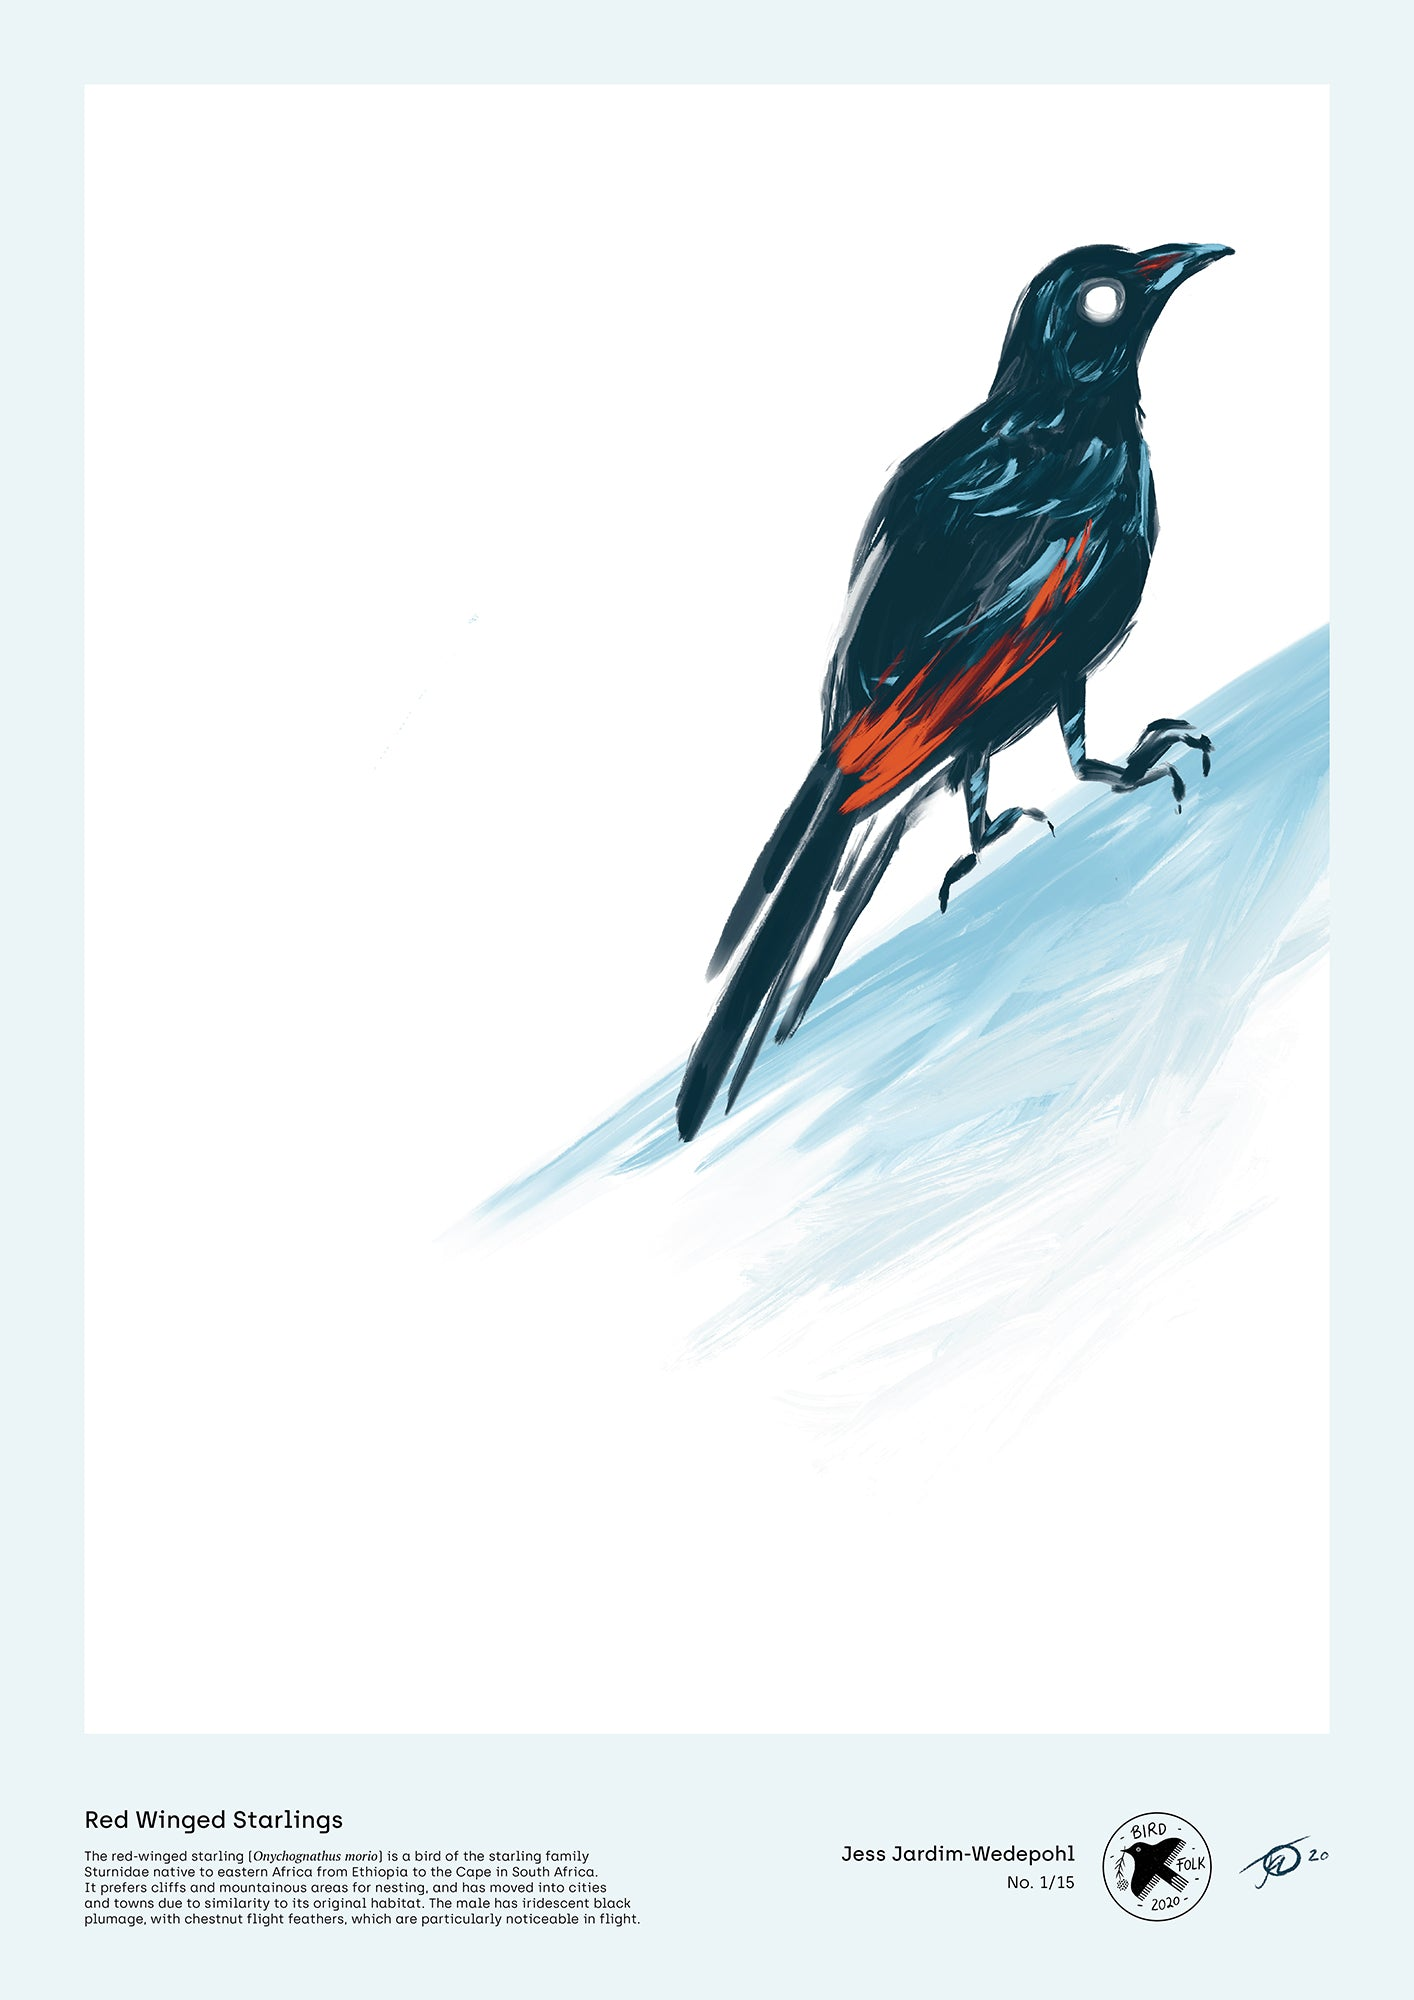 Red Winged Starlings - A2 print by Jess Jardim-Wedepohl